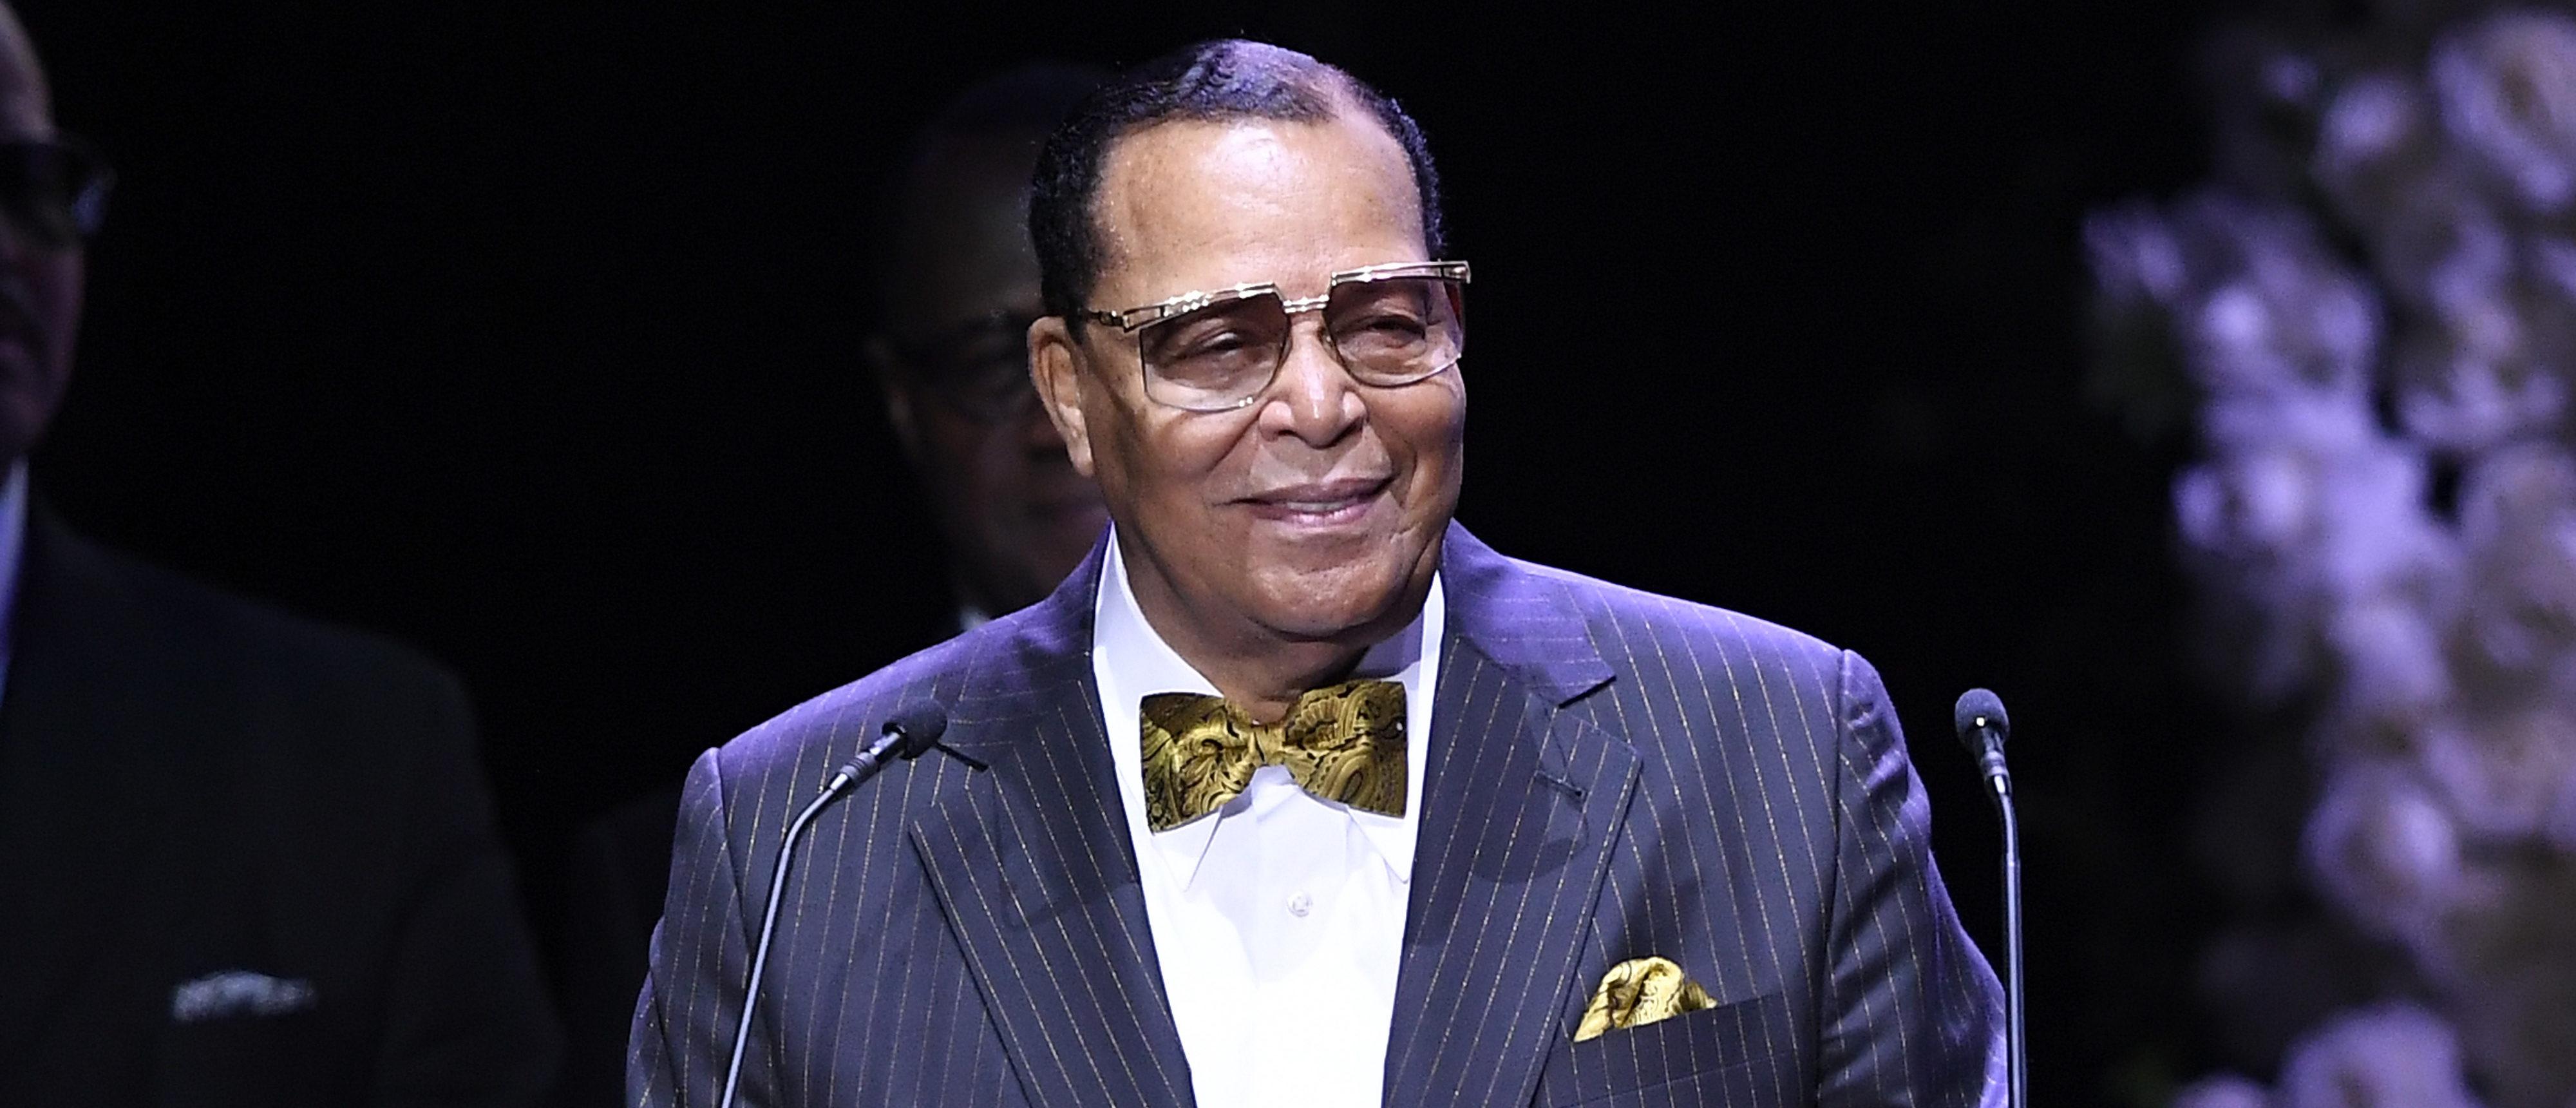 Farrakhan warns against 'toxic waste' vaccine…